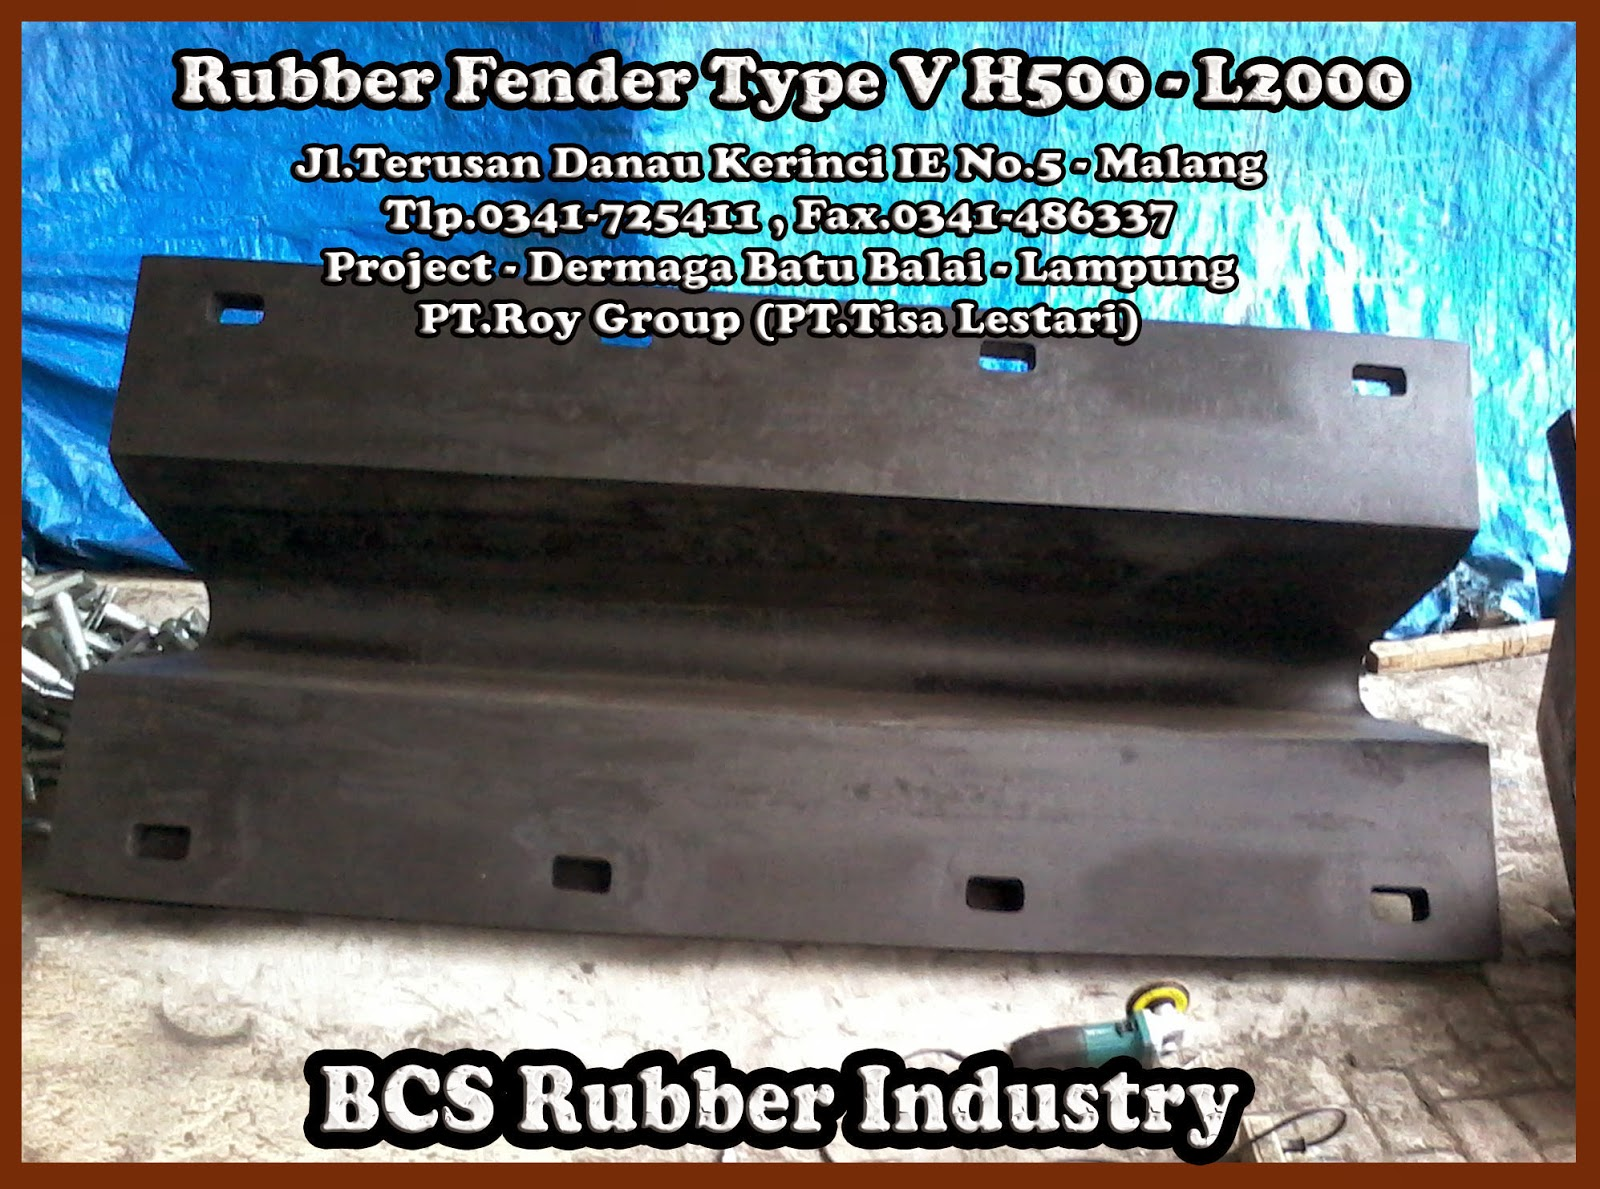 RUBBER FENDER V - RUBBER FENDER ARCH - BCS RUBBER INDUSTRY